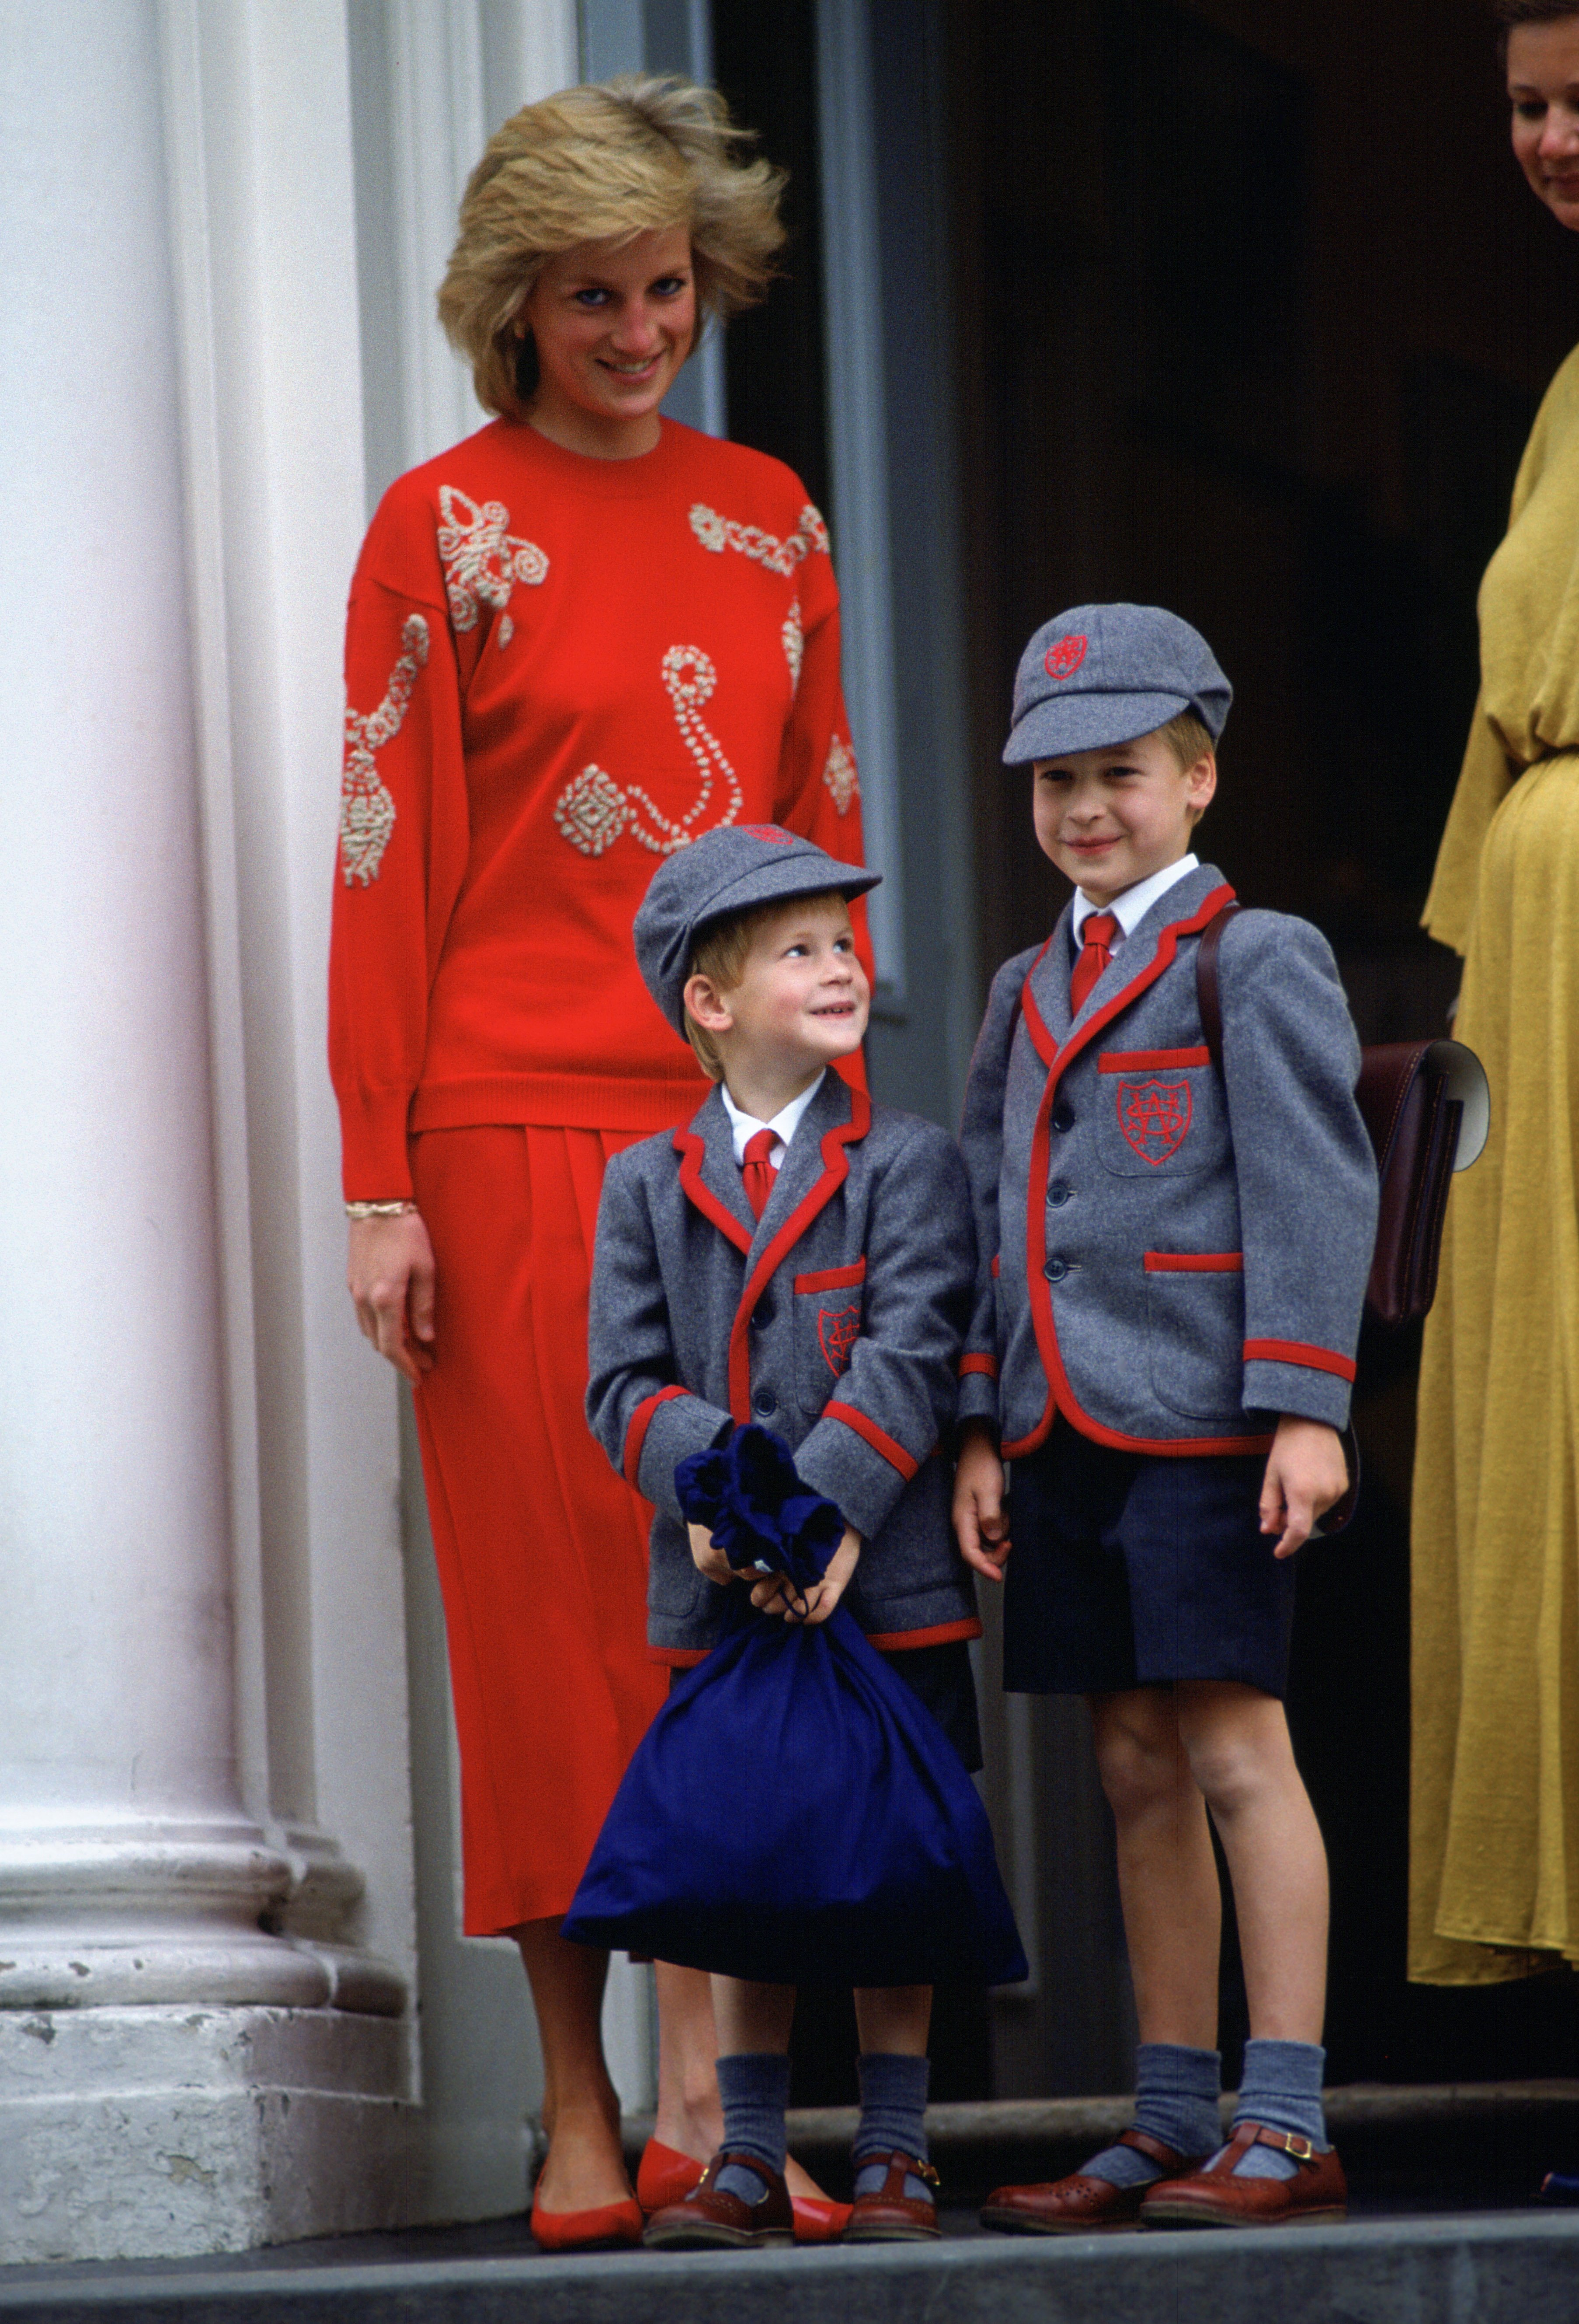 Princess Diana and her sons Prince William and Prince Harry on Harry's first day of school at Wetherby School, September, 1989. | Photo: Getty Images.